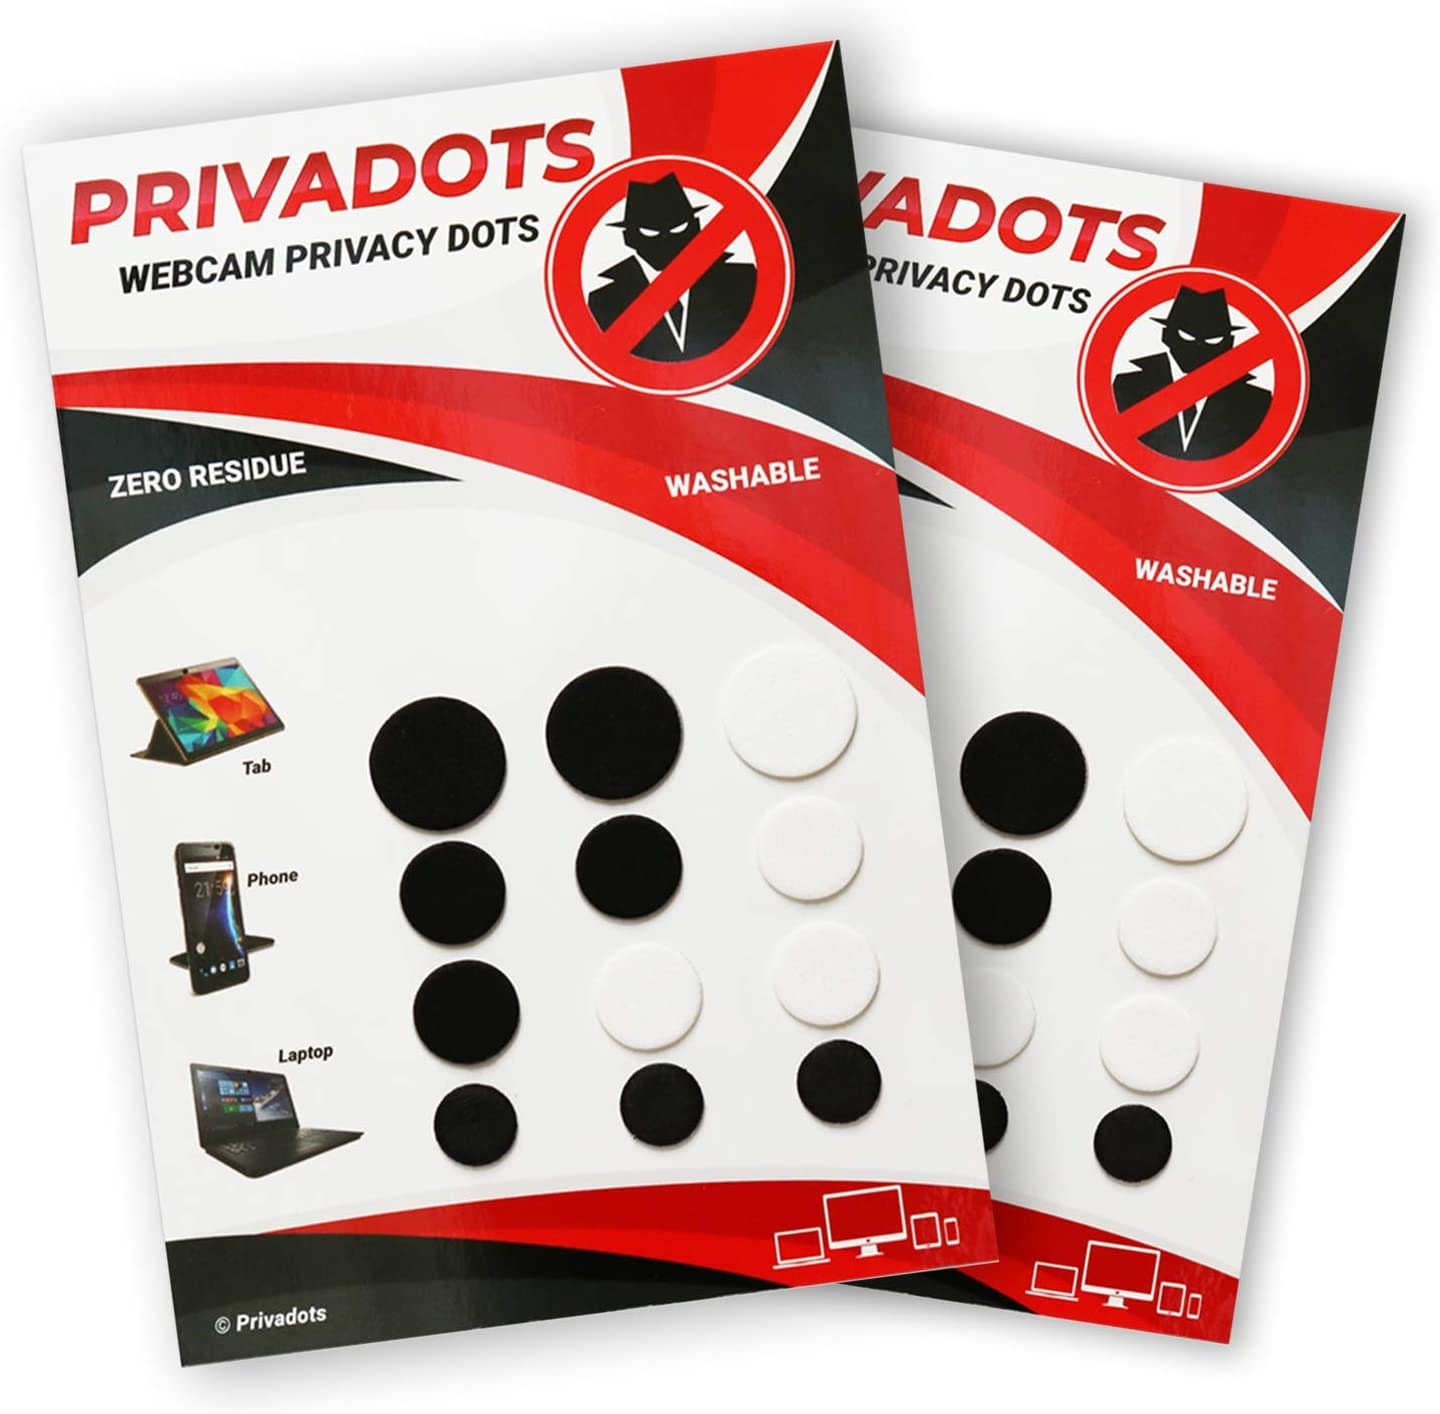 PRIVADOTS Webcam Covers Reusable 24 Pack (2 Sheets), Low-Tack, 3 Sizes for Laptops, Tablets, Phones (6White-18Black)